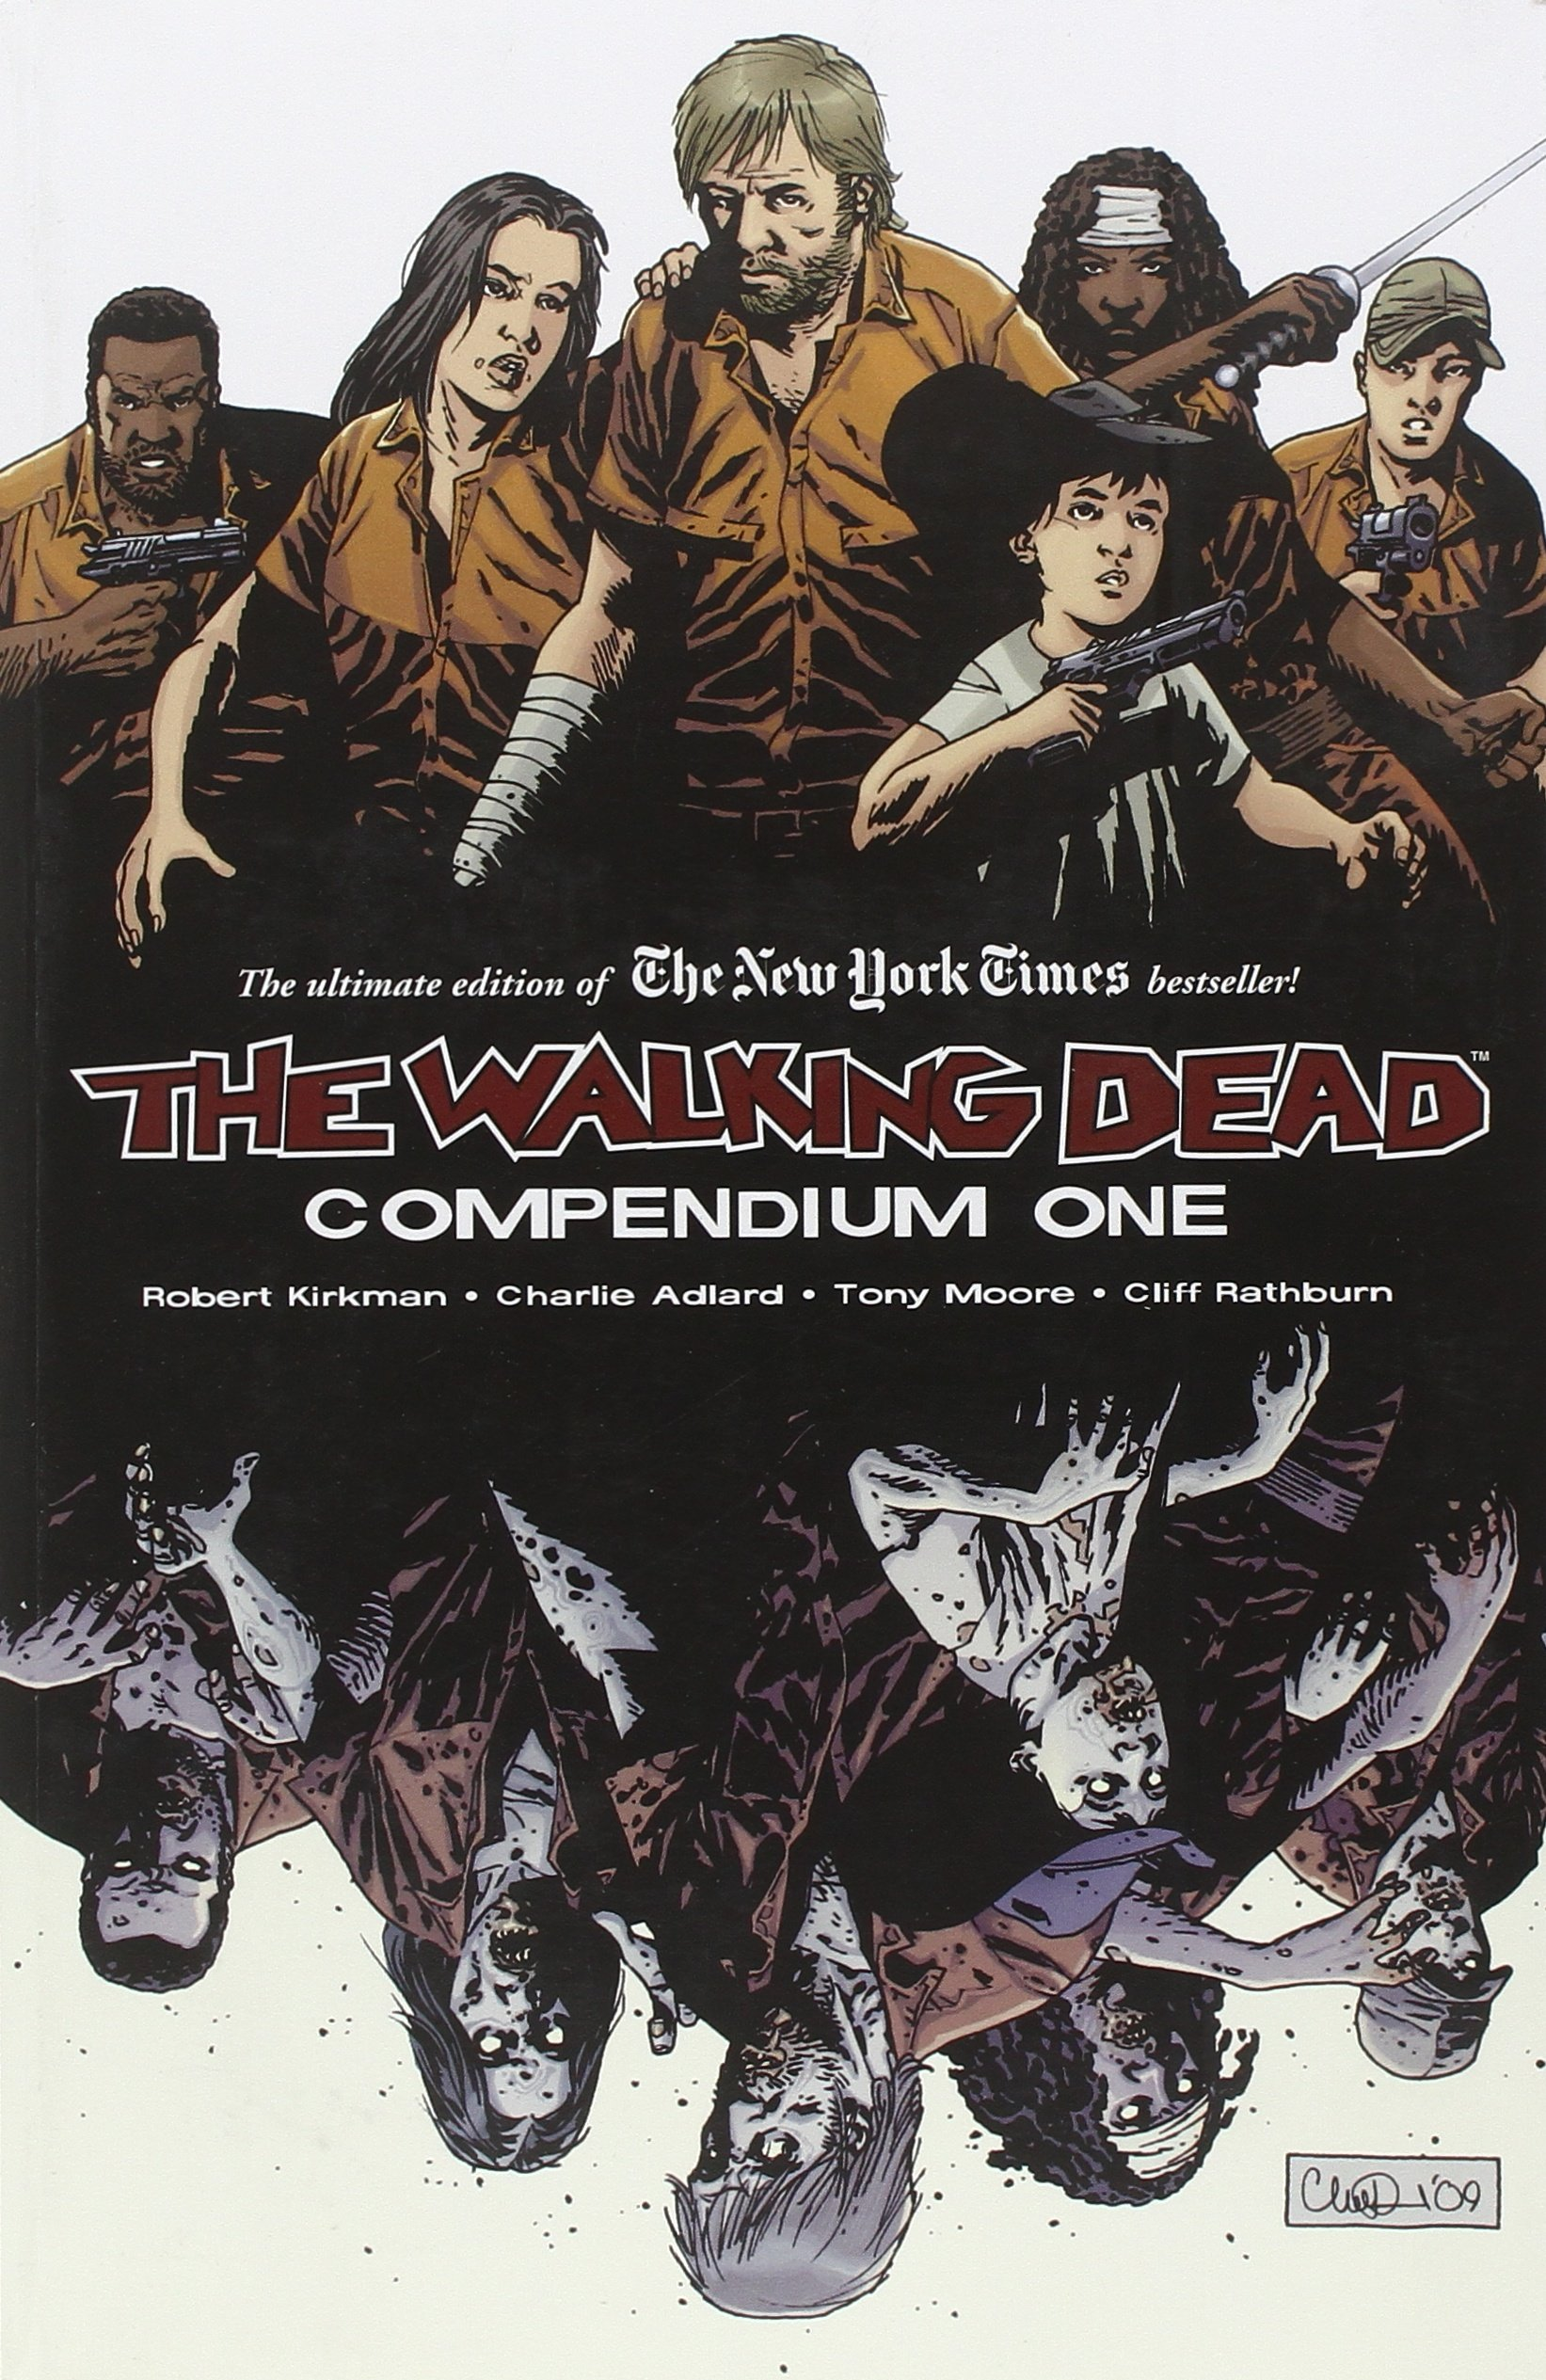 The Walking Dead:  Compendium One by Image Comics